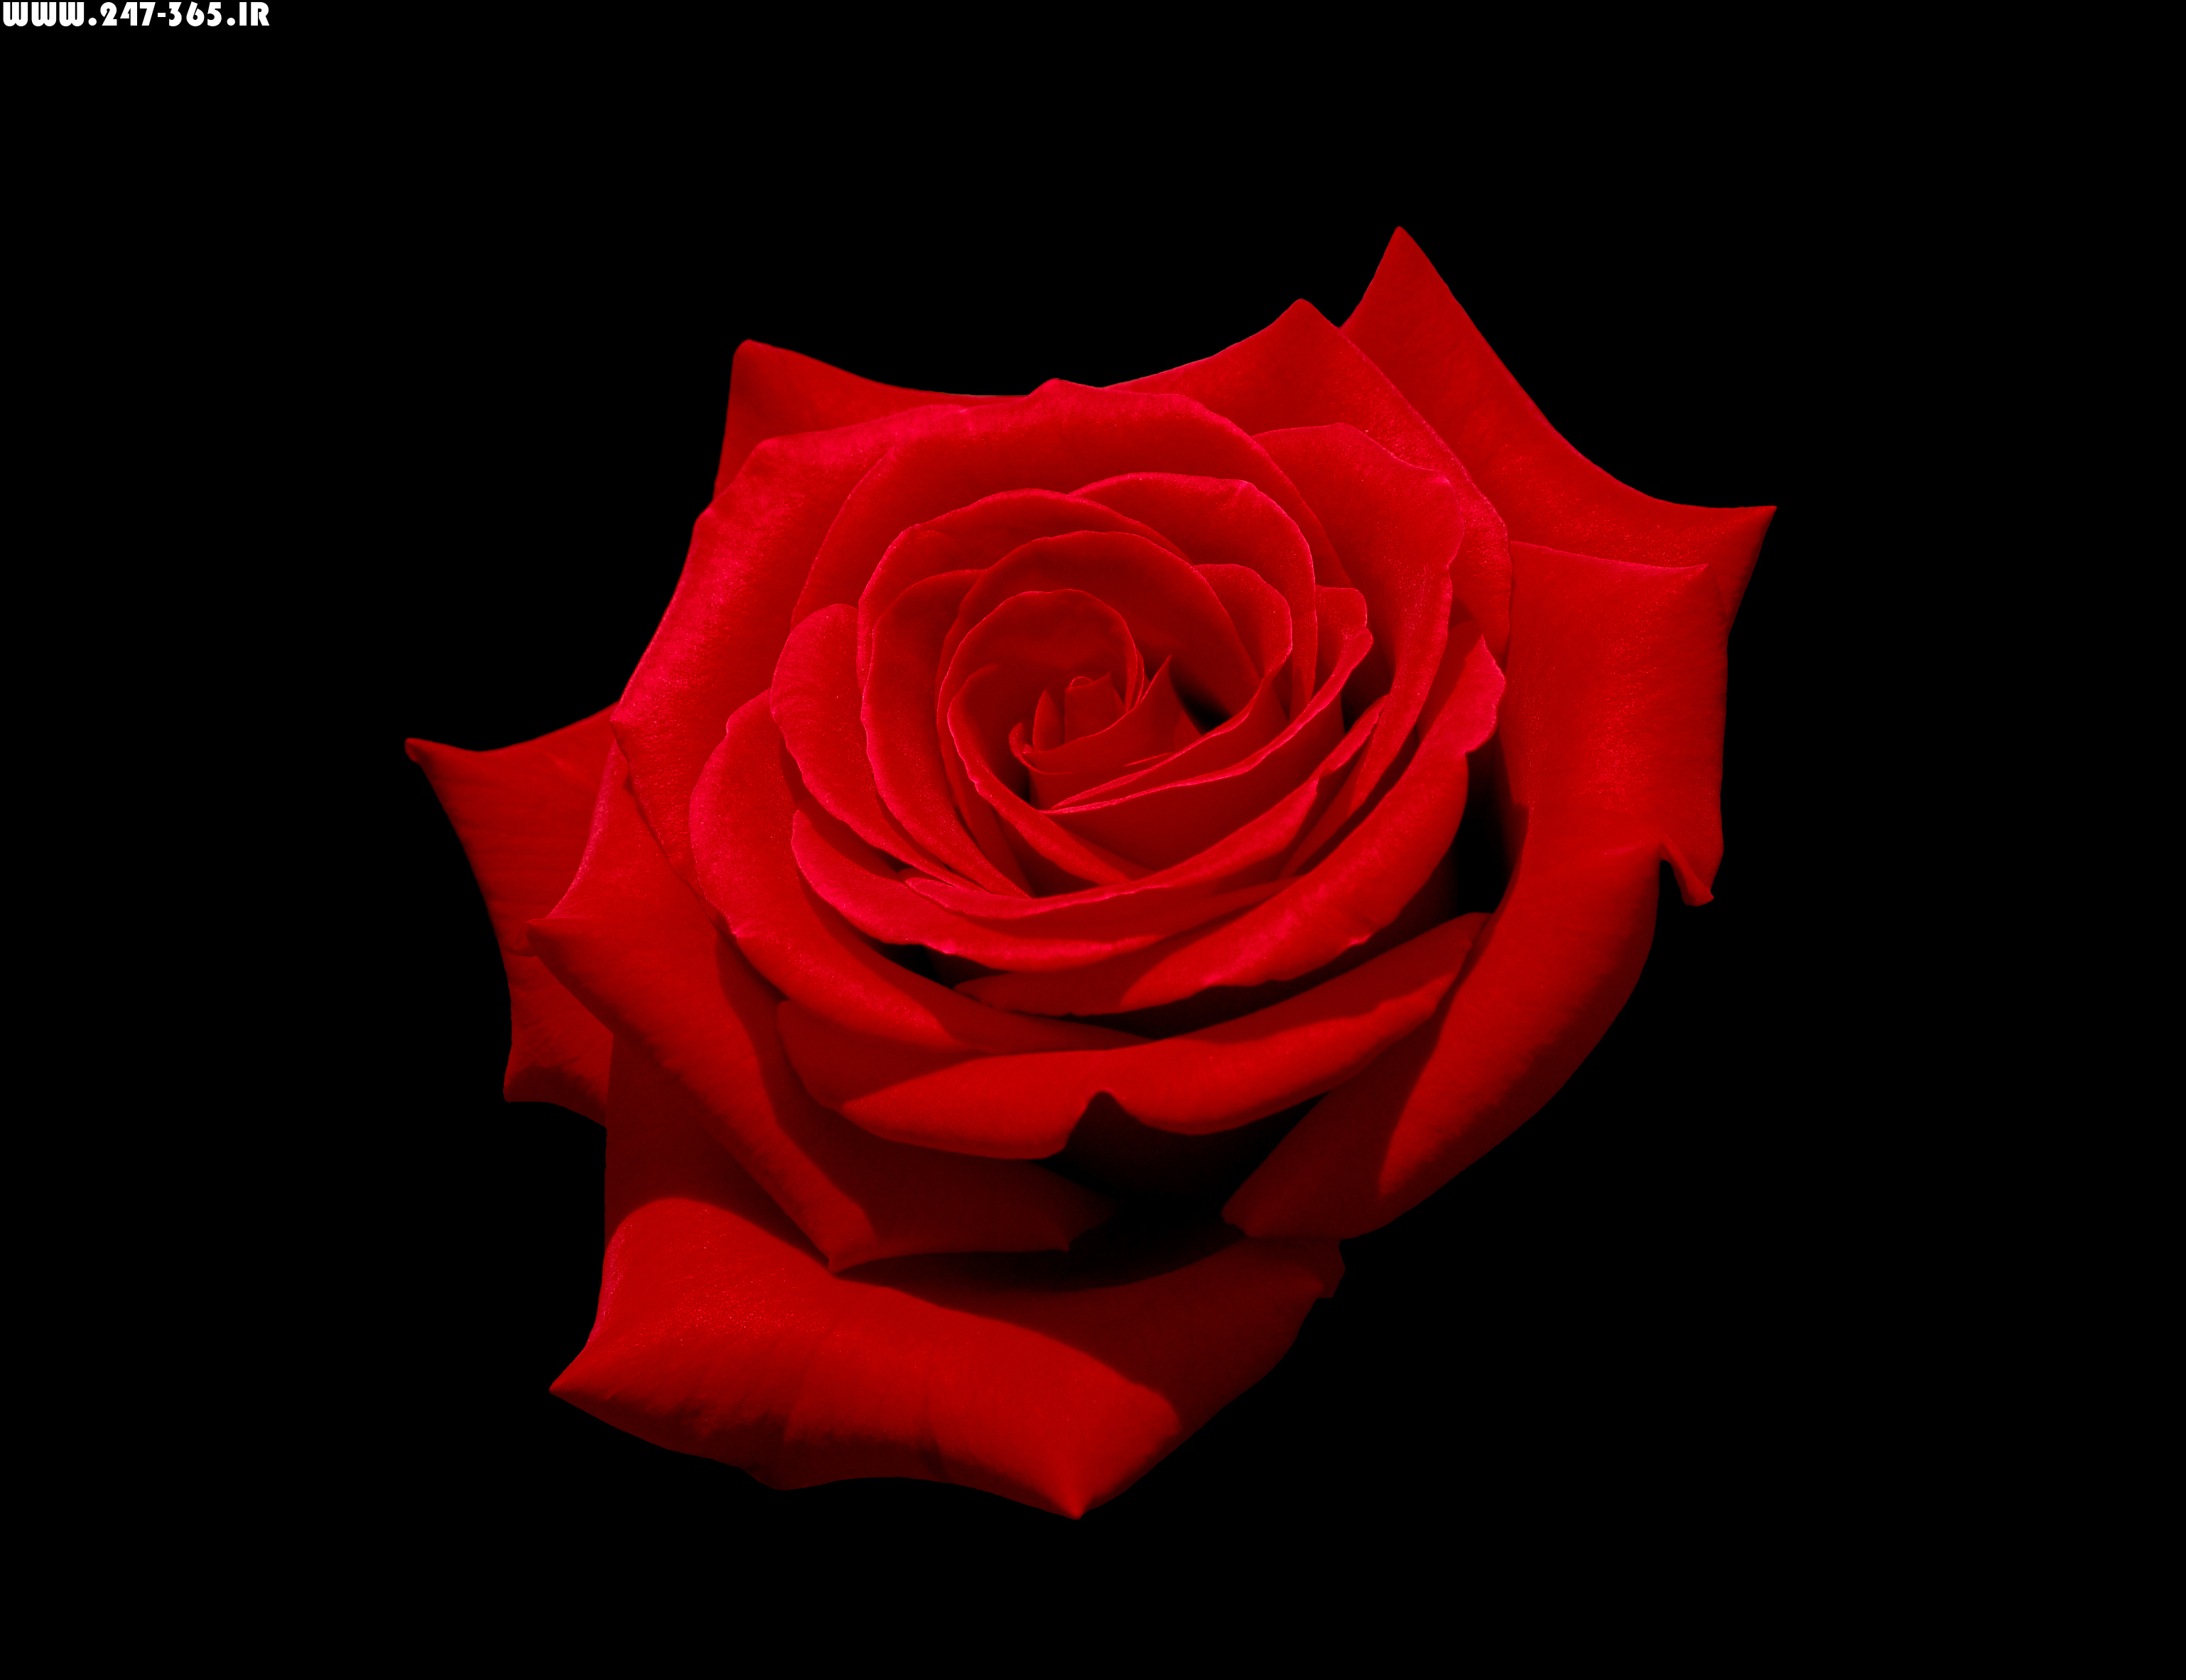 http://dl.247-365.ir/pic/gol/red_rose_3/Red_Rose_3_09.jpg